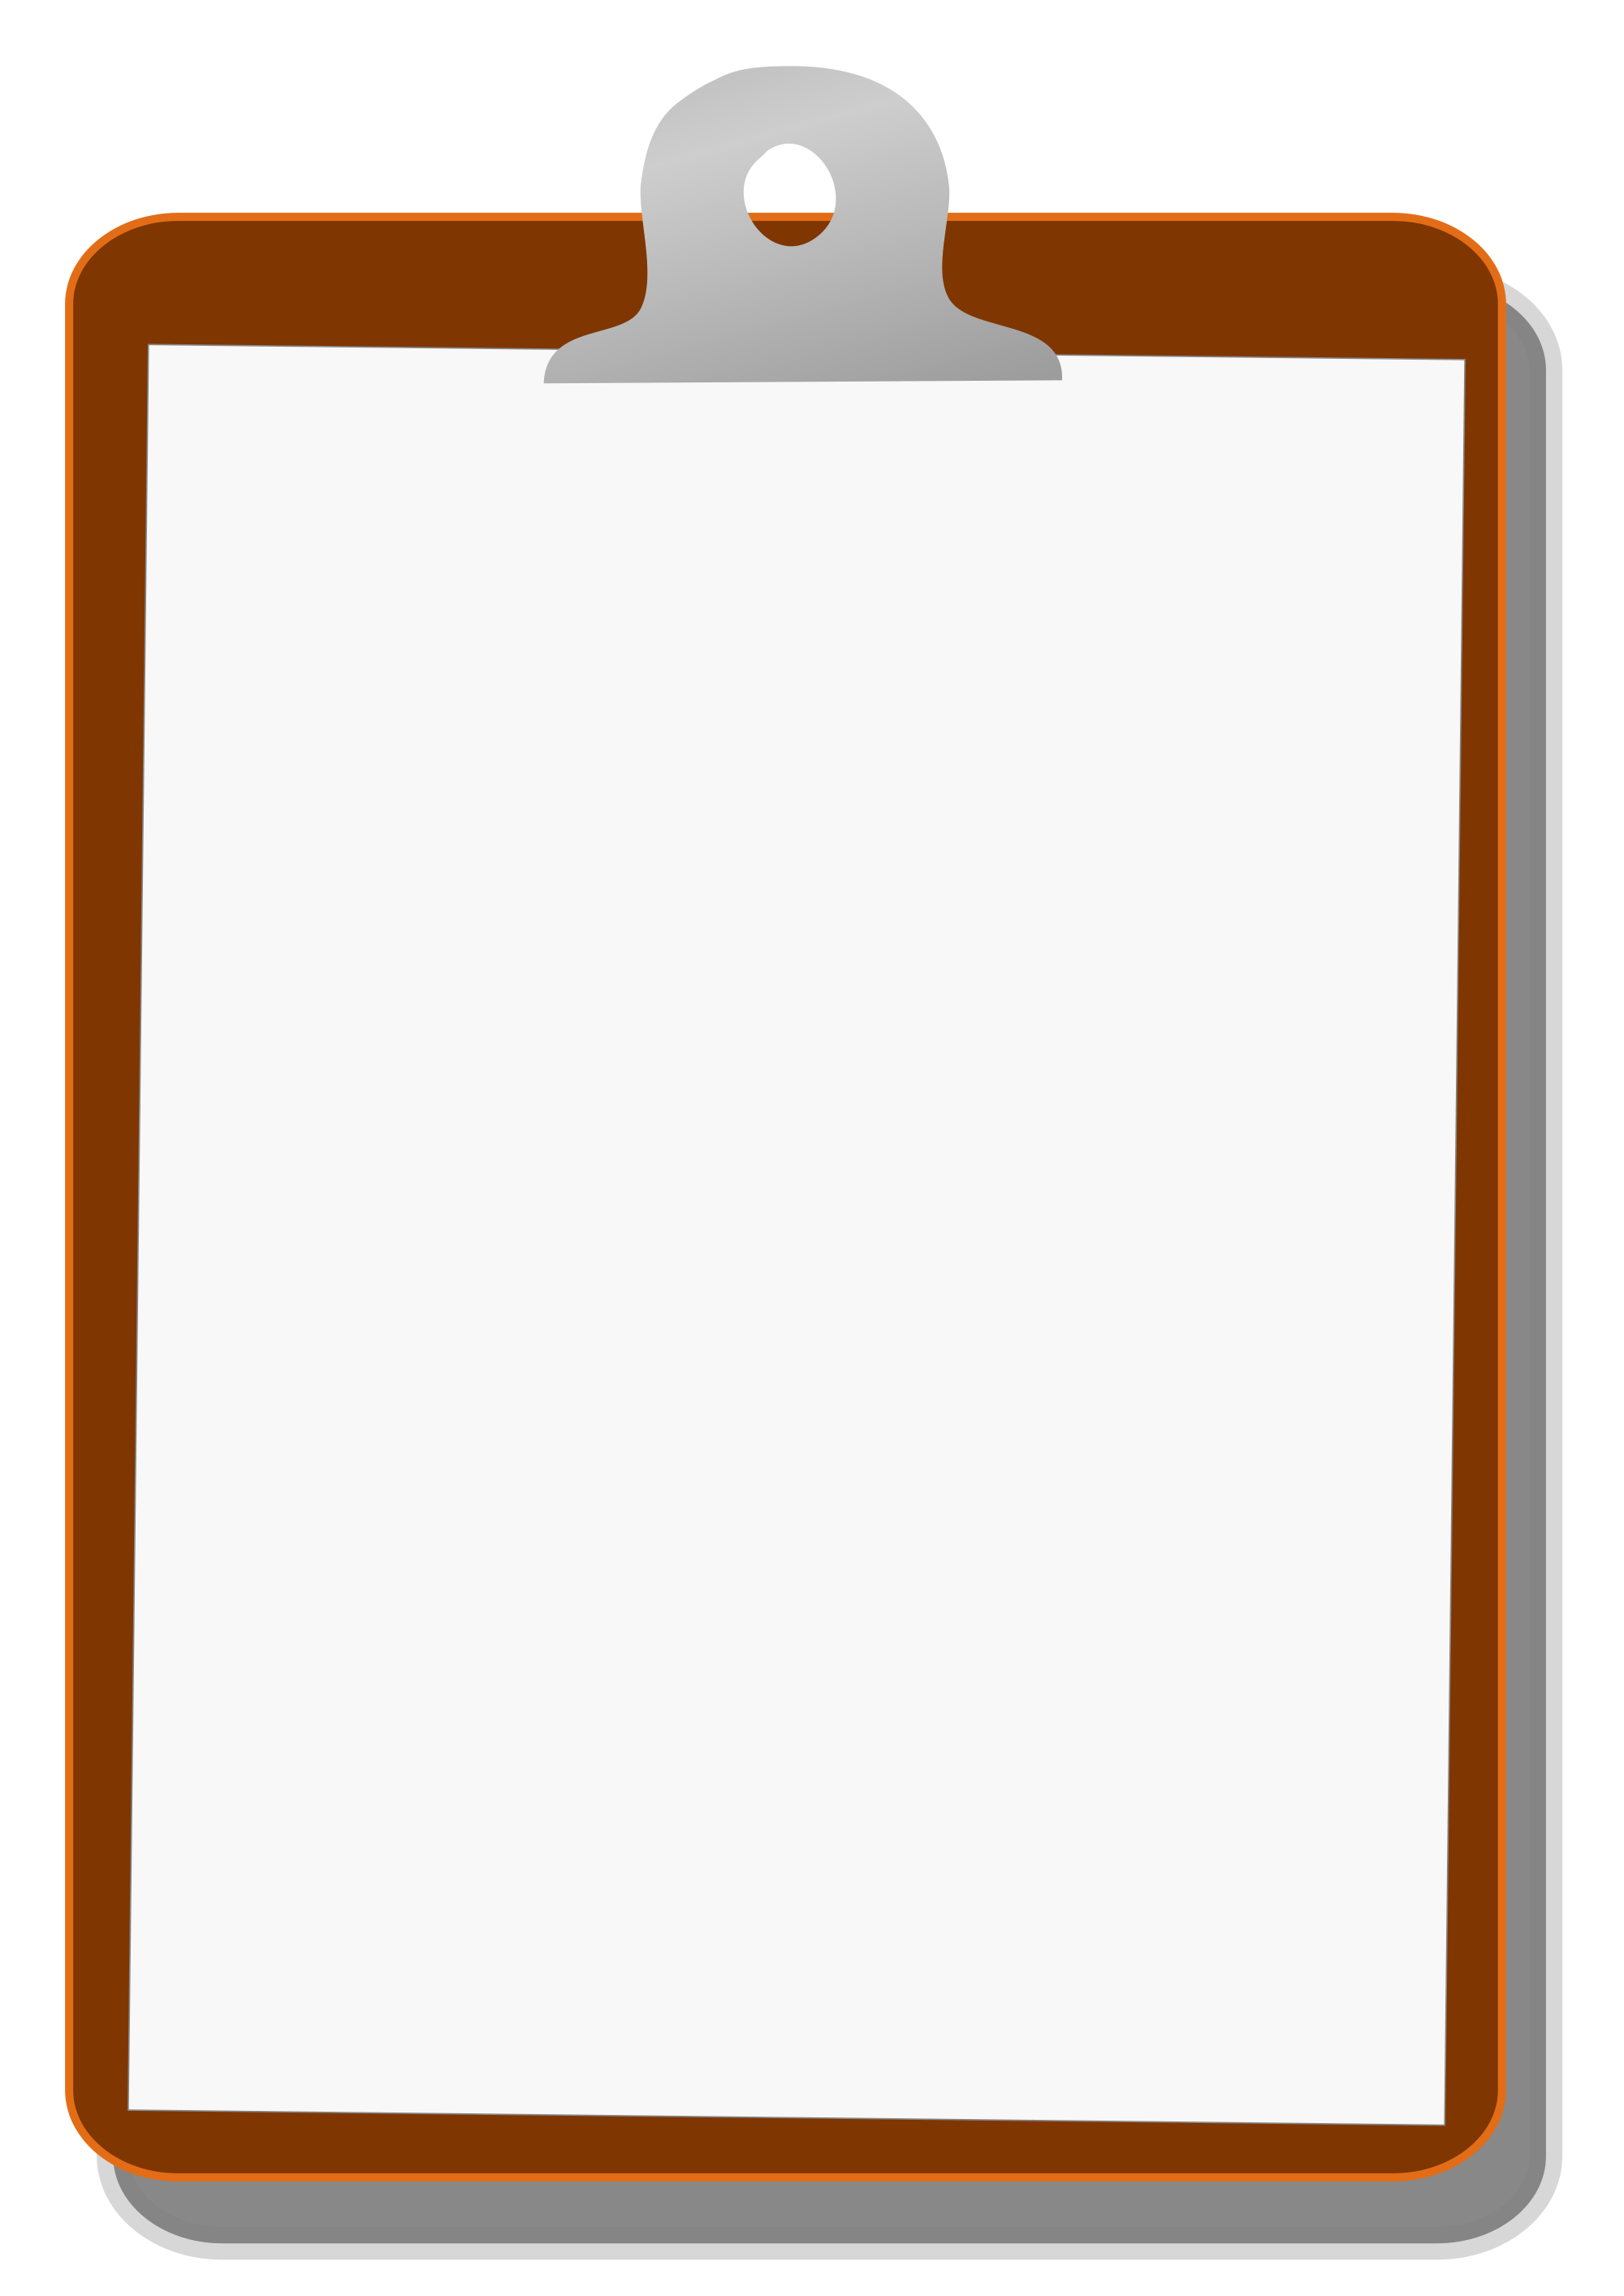 File svg wikimedia commons. Clipboard clipart personal statement